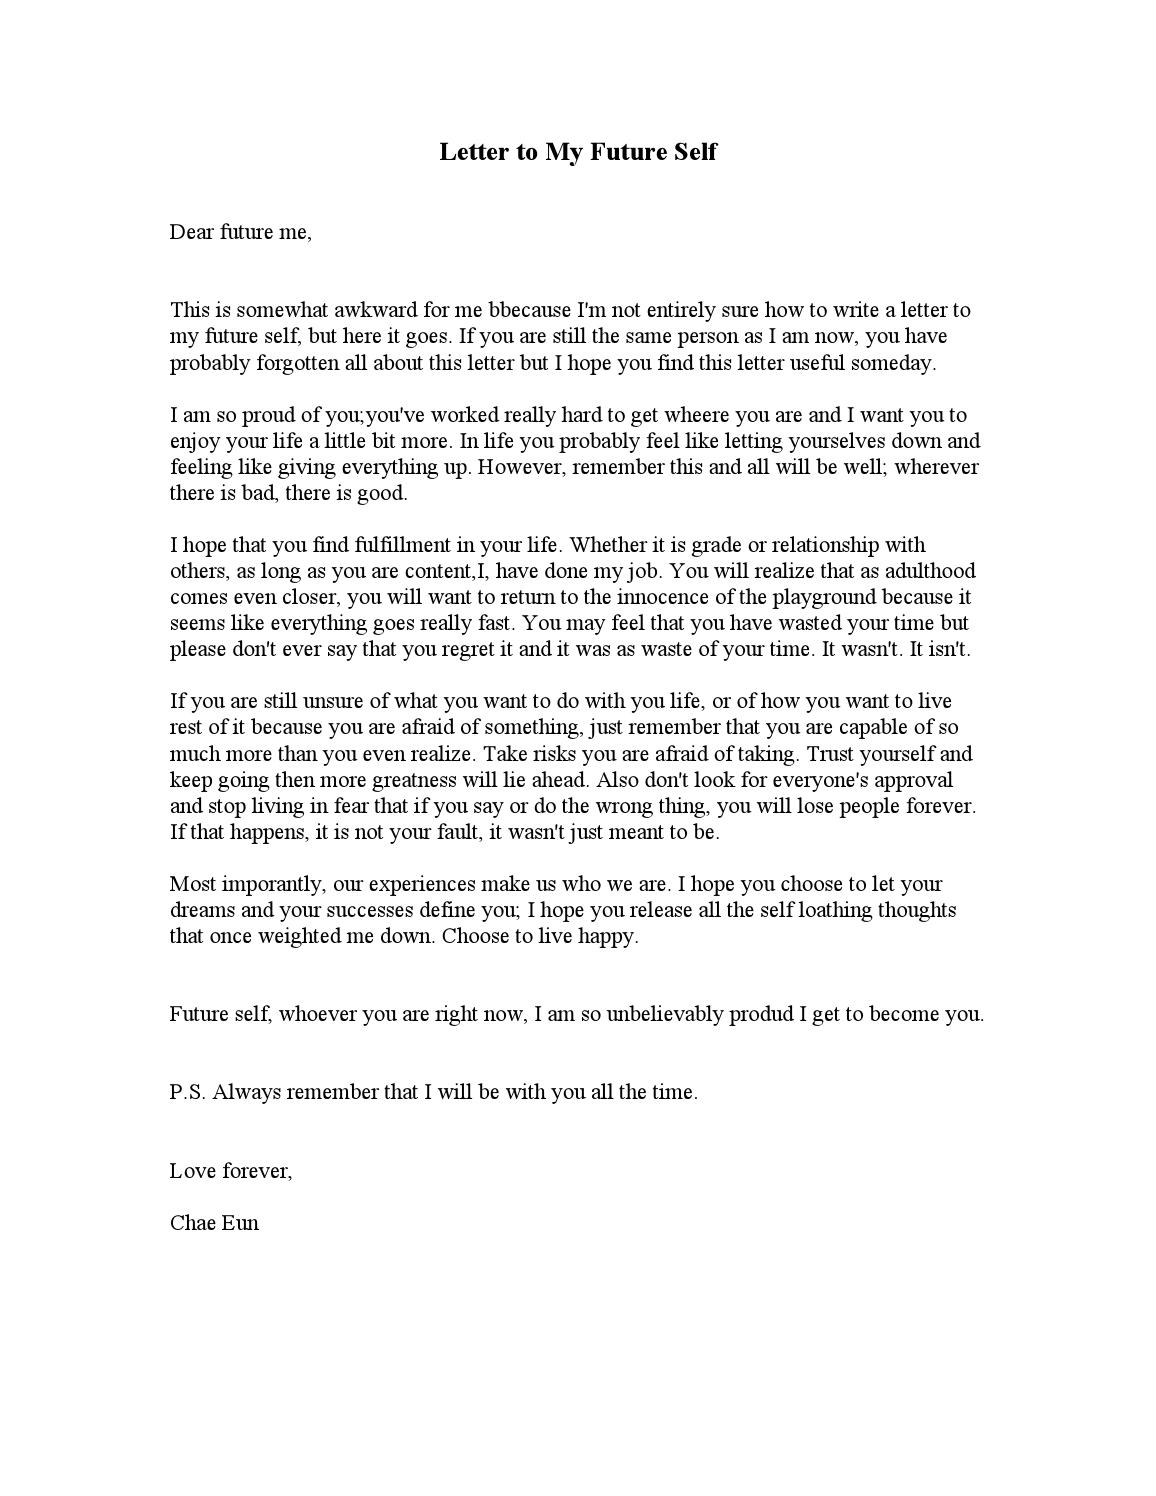 Letter to My Future Self Template - Free Cover Letter Templates Letter to Your Future Self